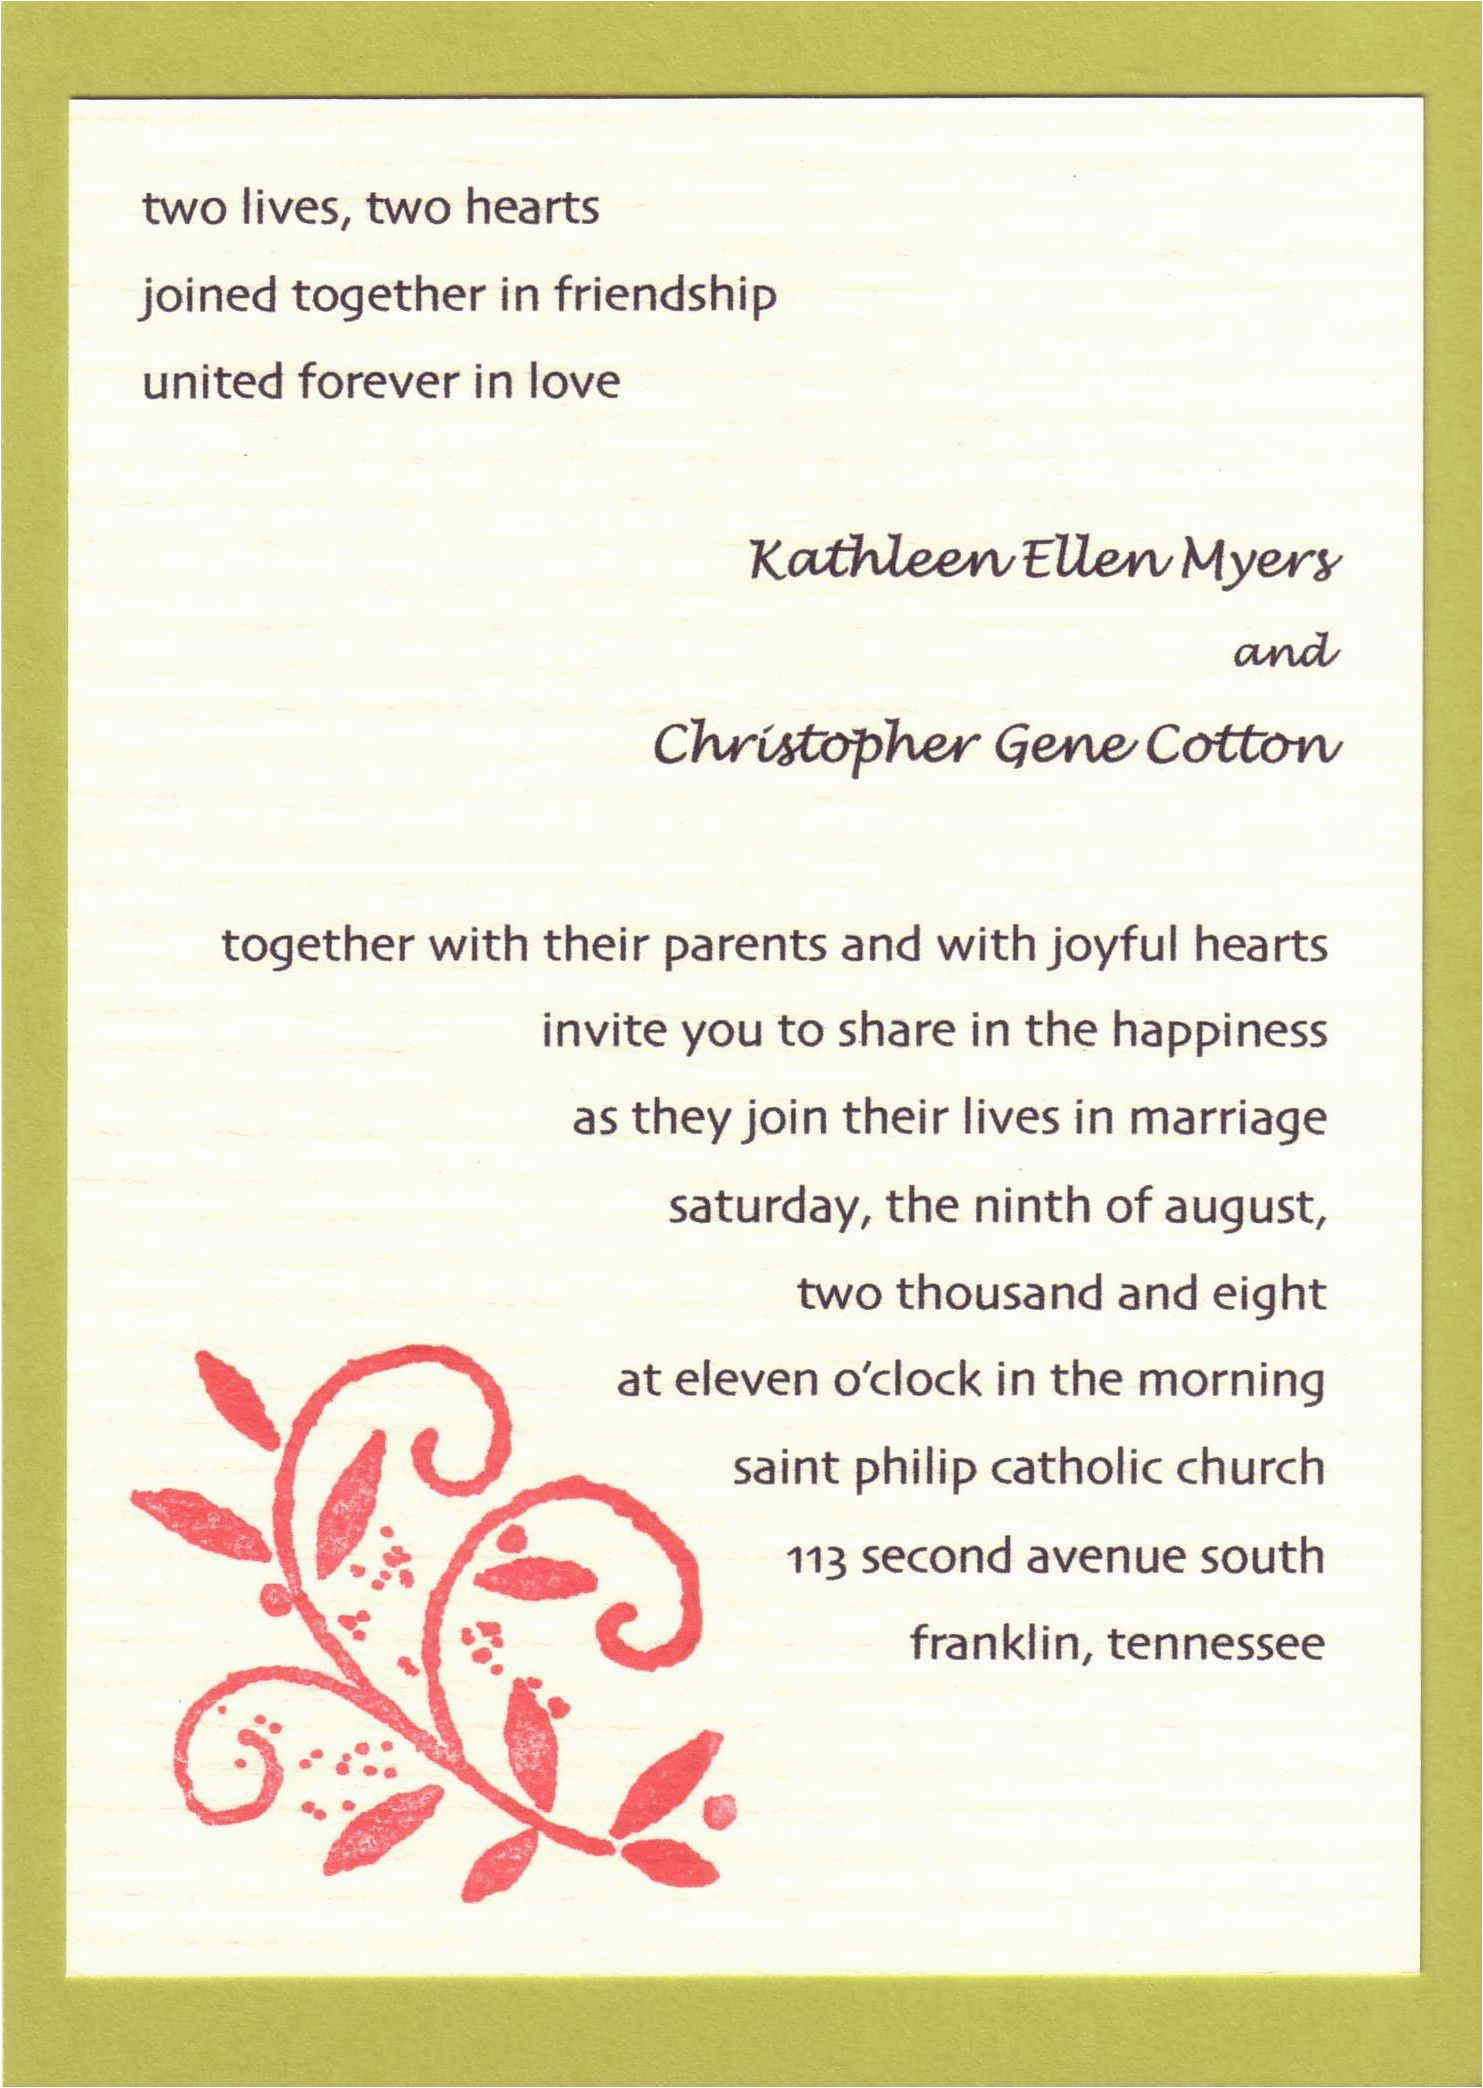 invitation card write up